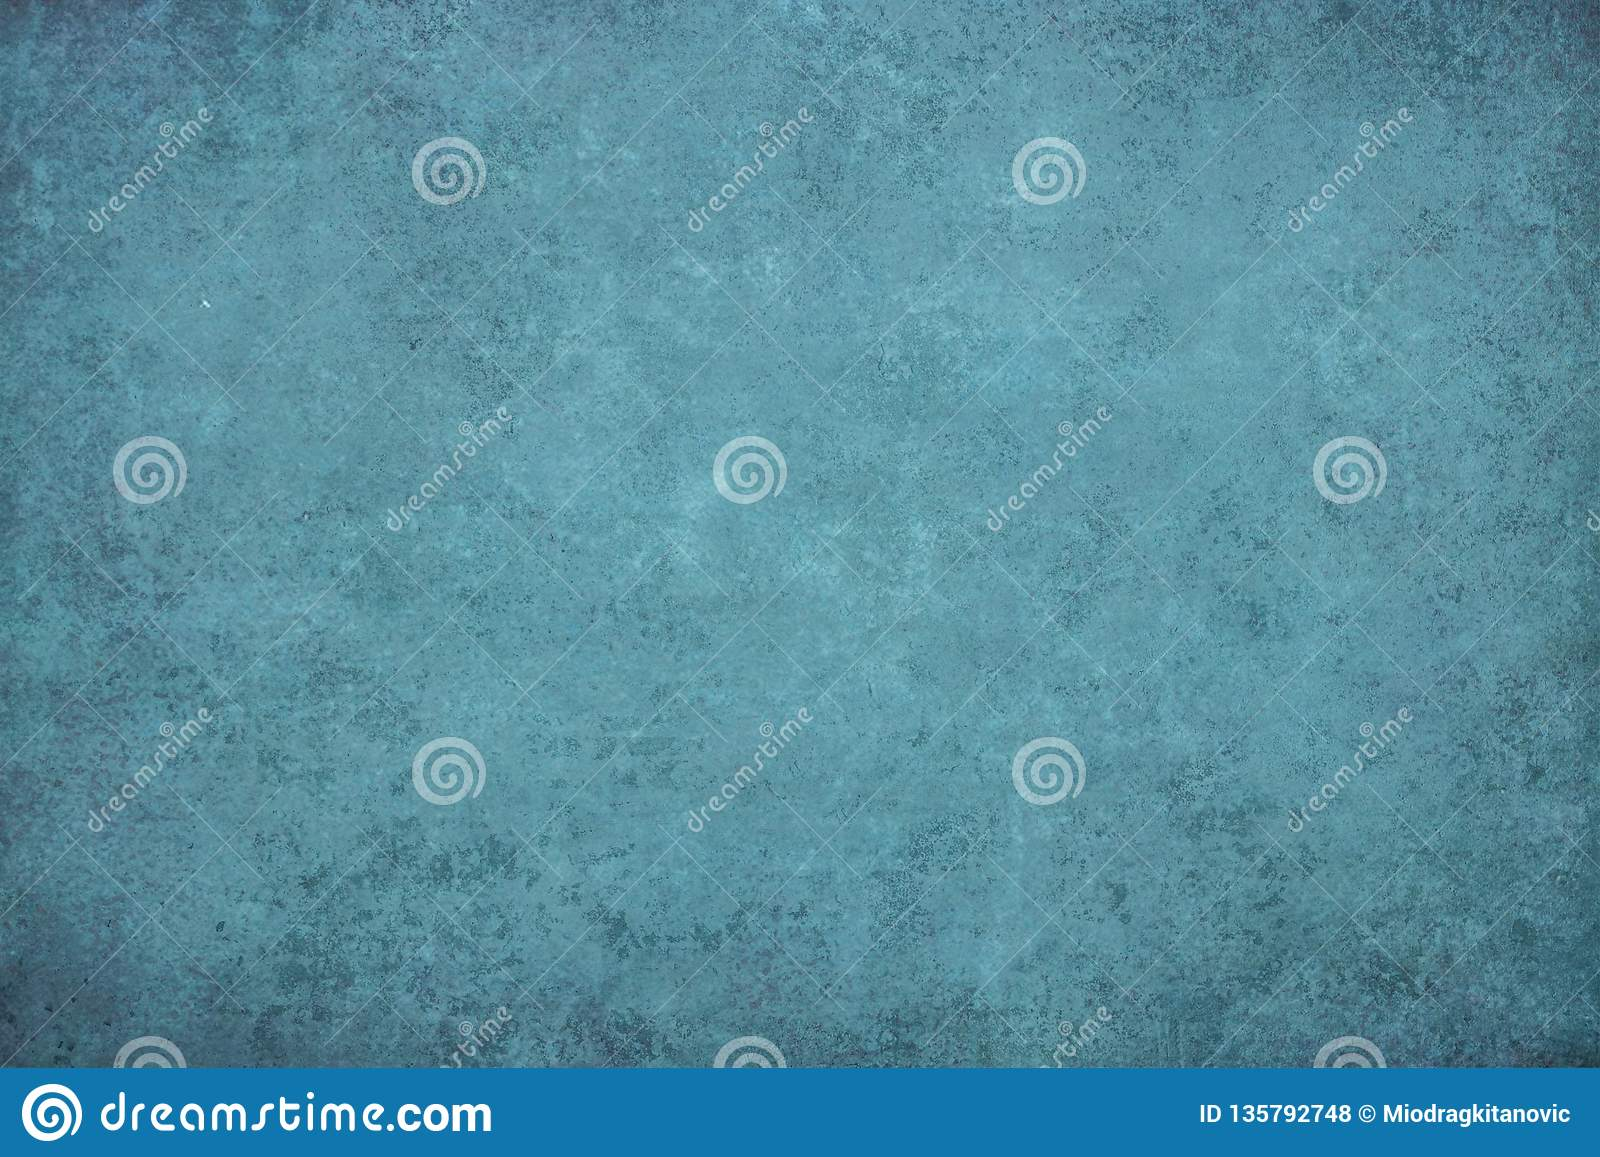 Turquoise dotted grunge texture, background